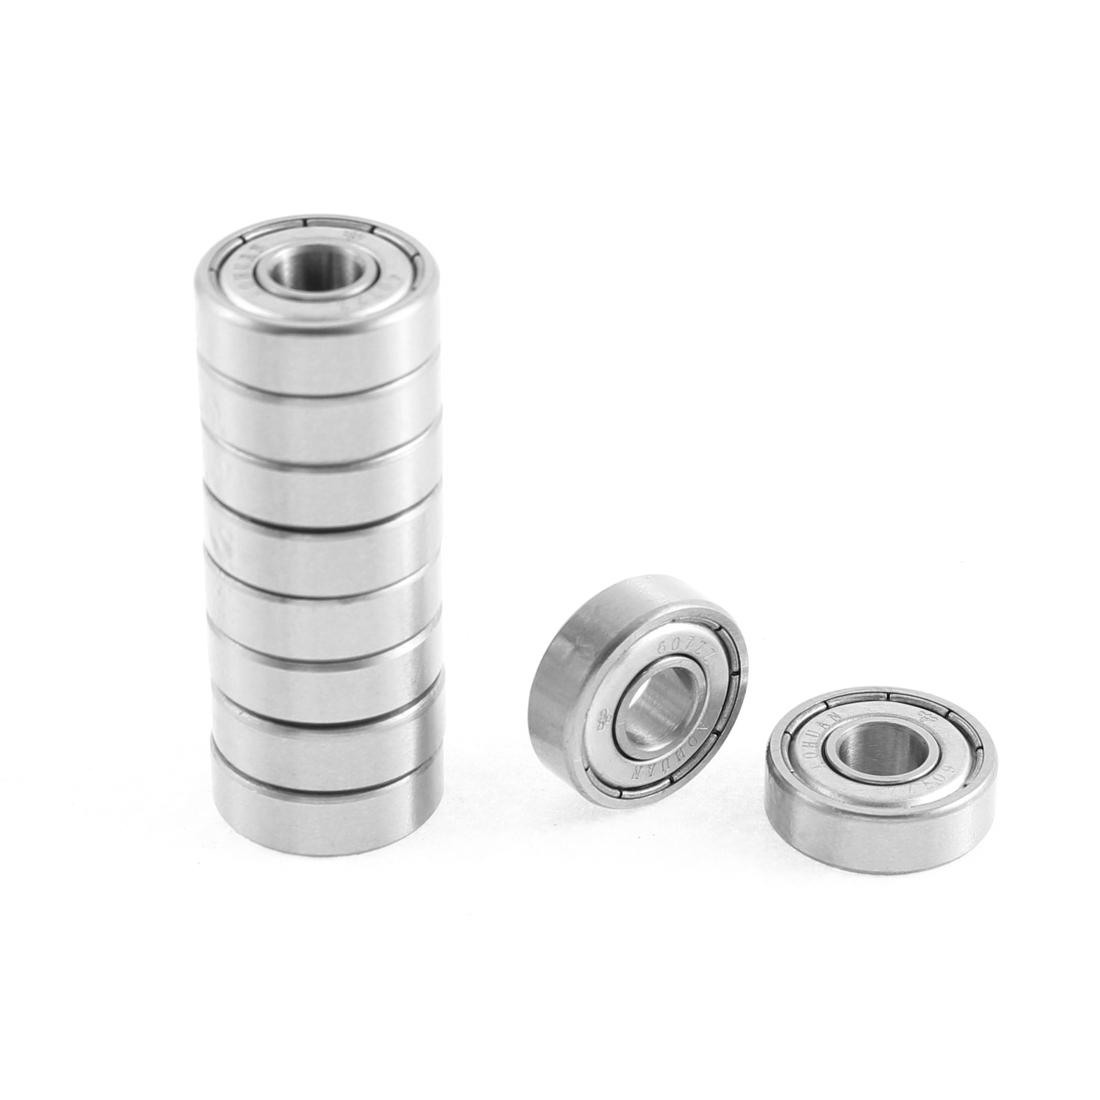 10 Pcs 607ZZ 19mmx7mmx6mm Single Row Deep Groove Ball Bearing Silver Tone